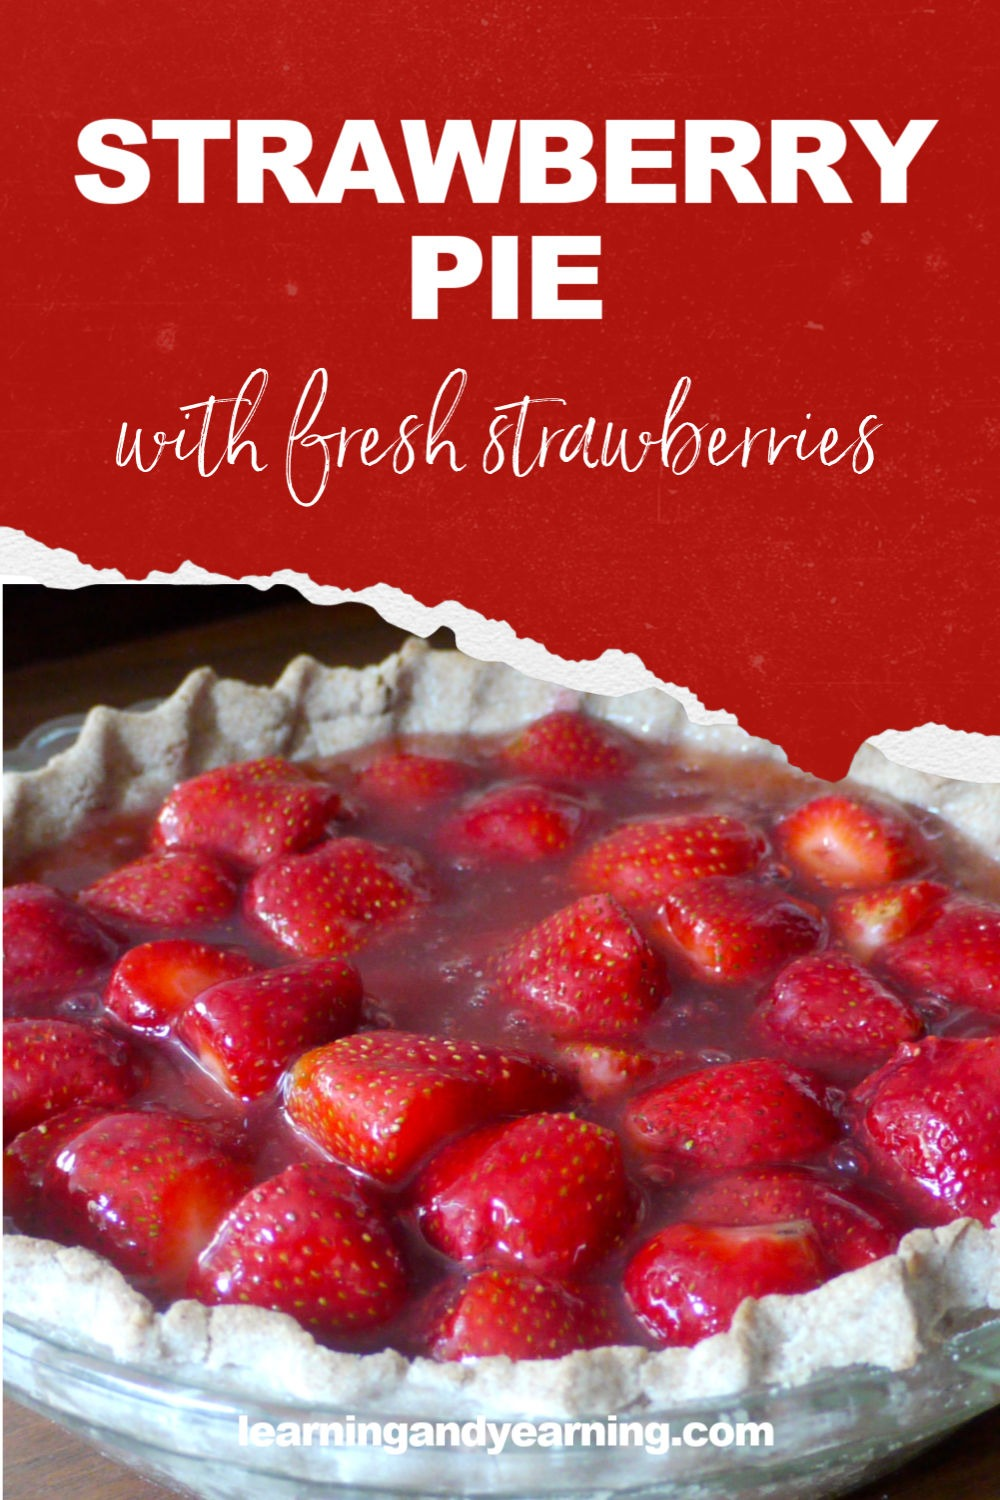 Delicious fresh strawberry pie!